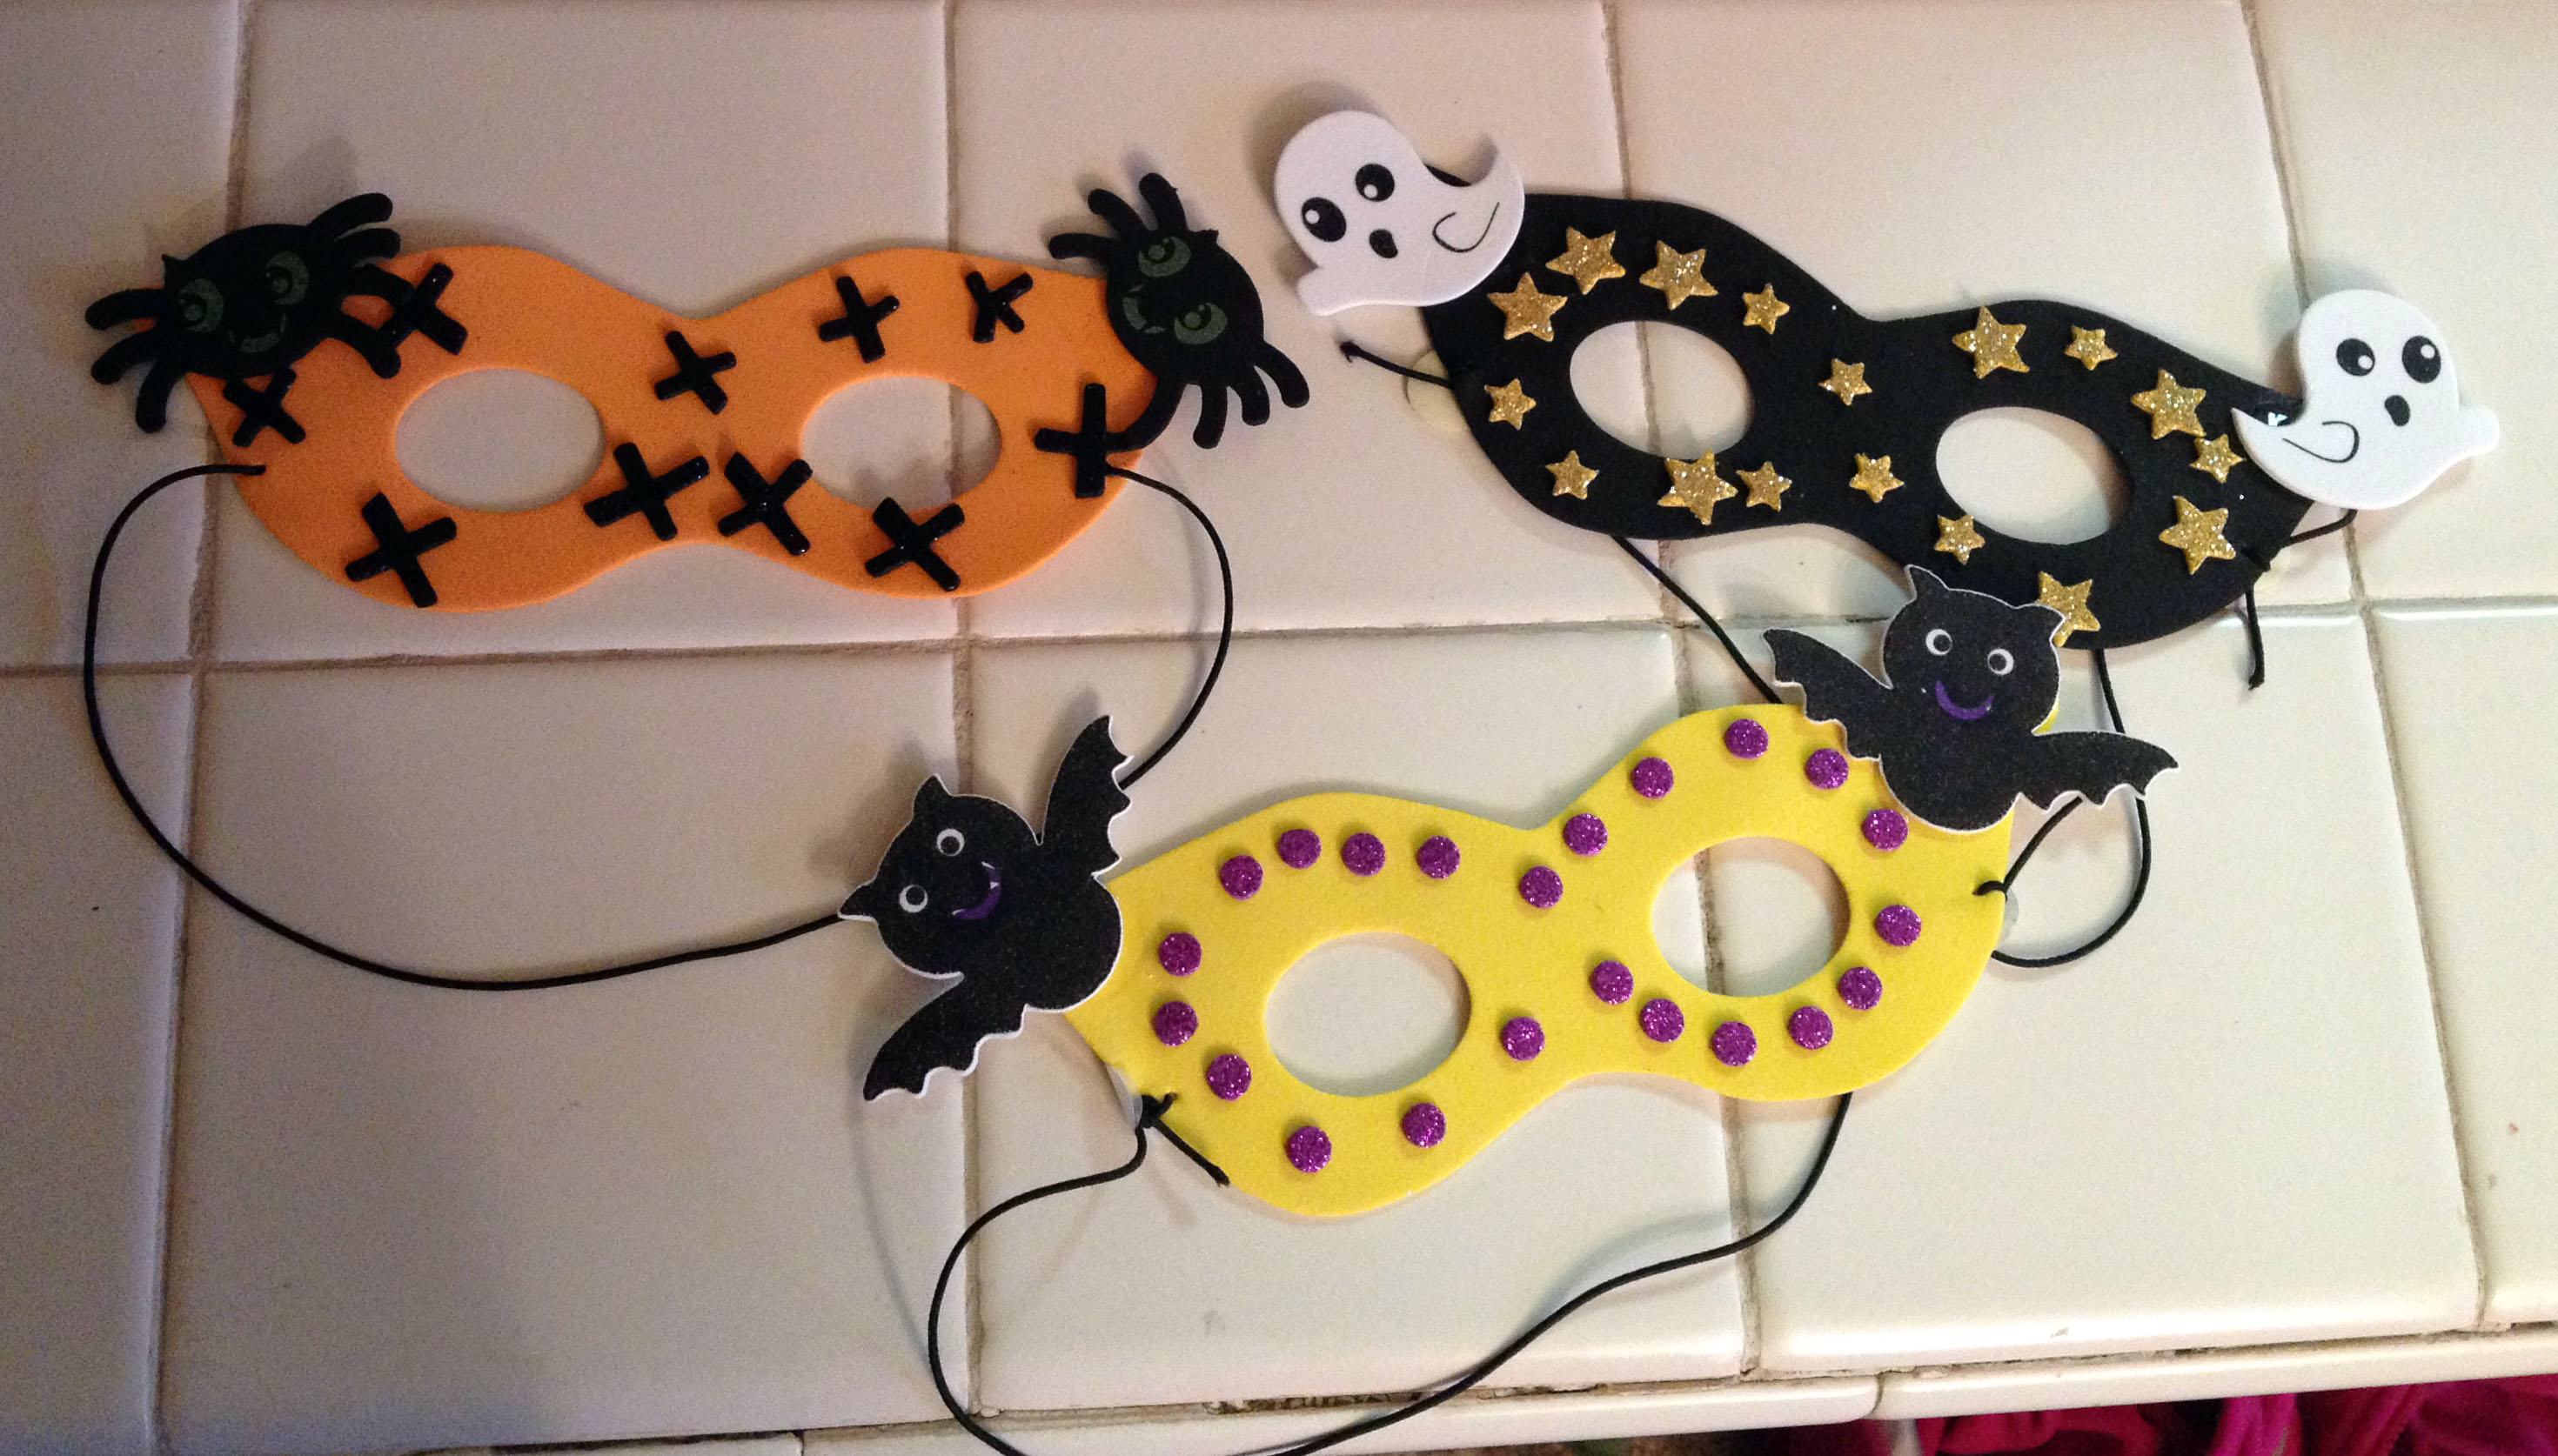 keeping in theme with halloween crafts the kids and i made these halloween foam masks yesterday